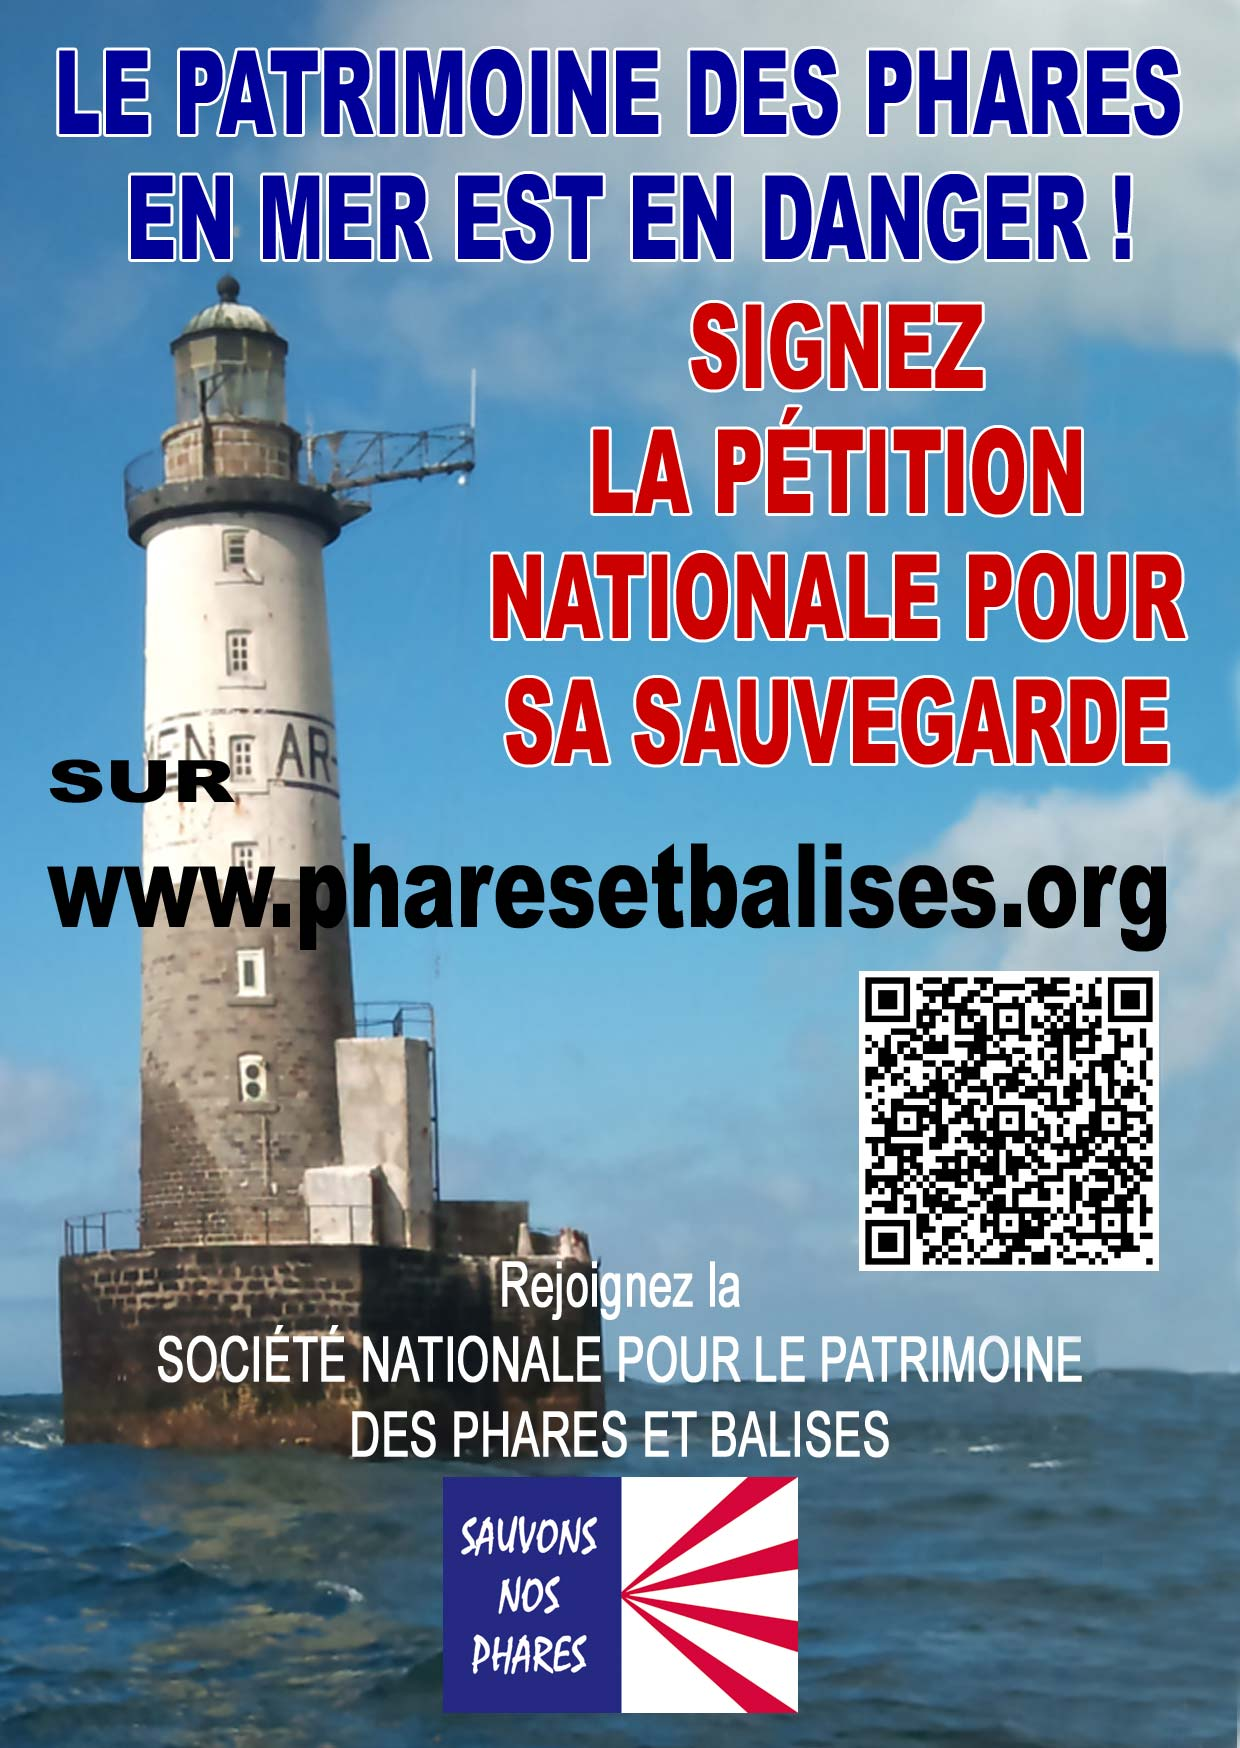 petition nationale